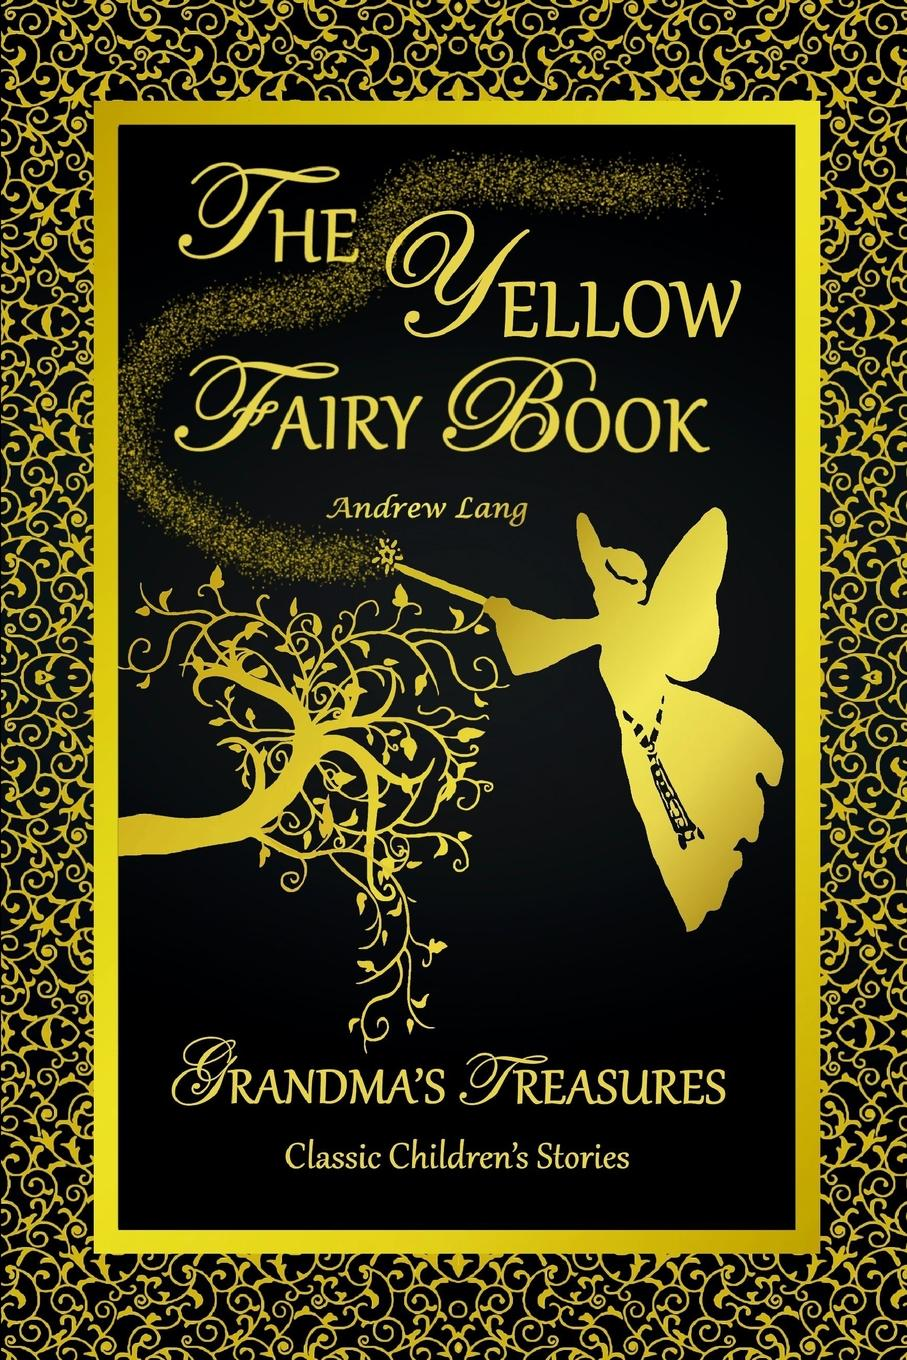 Фото - ANDREW LANG, GRANDMA'S TREASURES THE YELLOW FAIRY BOOK - ANDREW LANG mummy fairy and me fairy in waiting